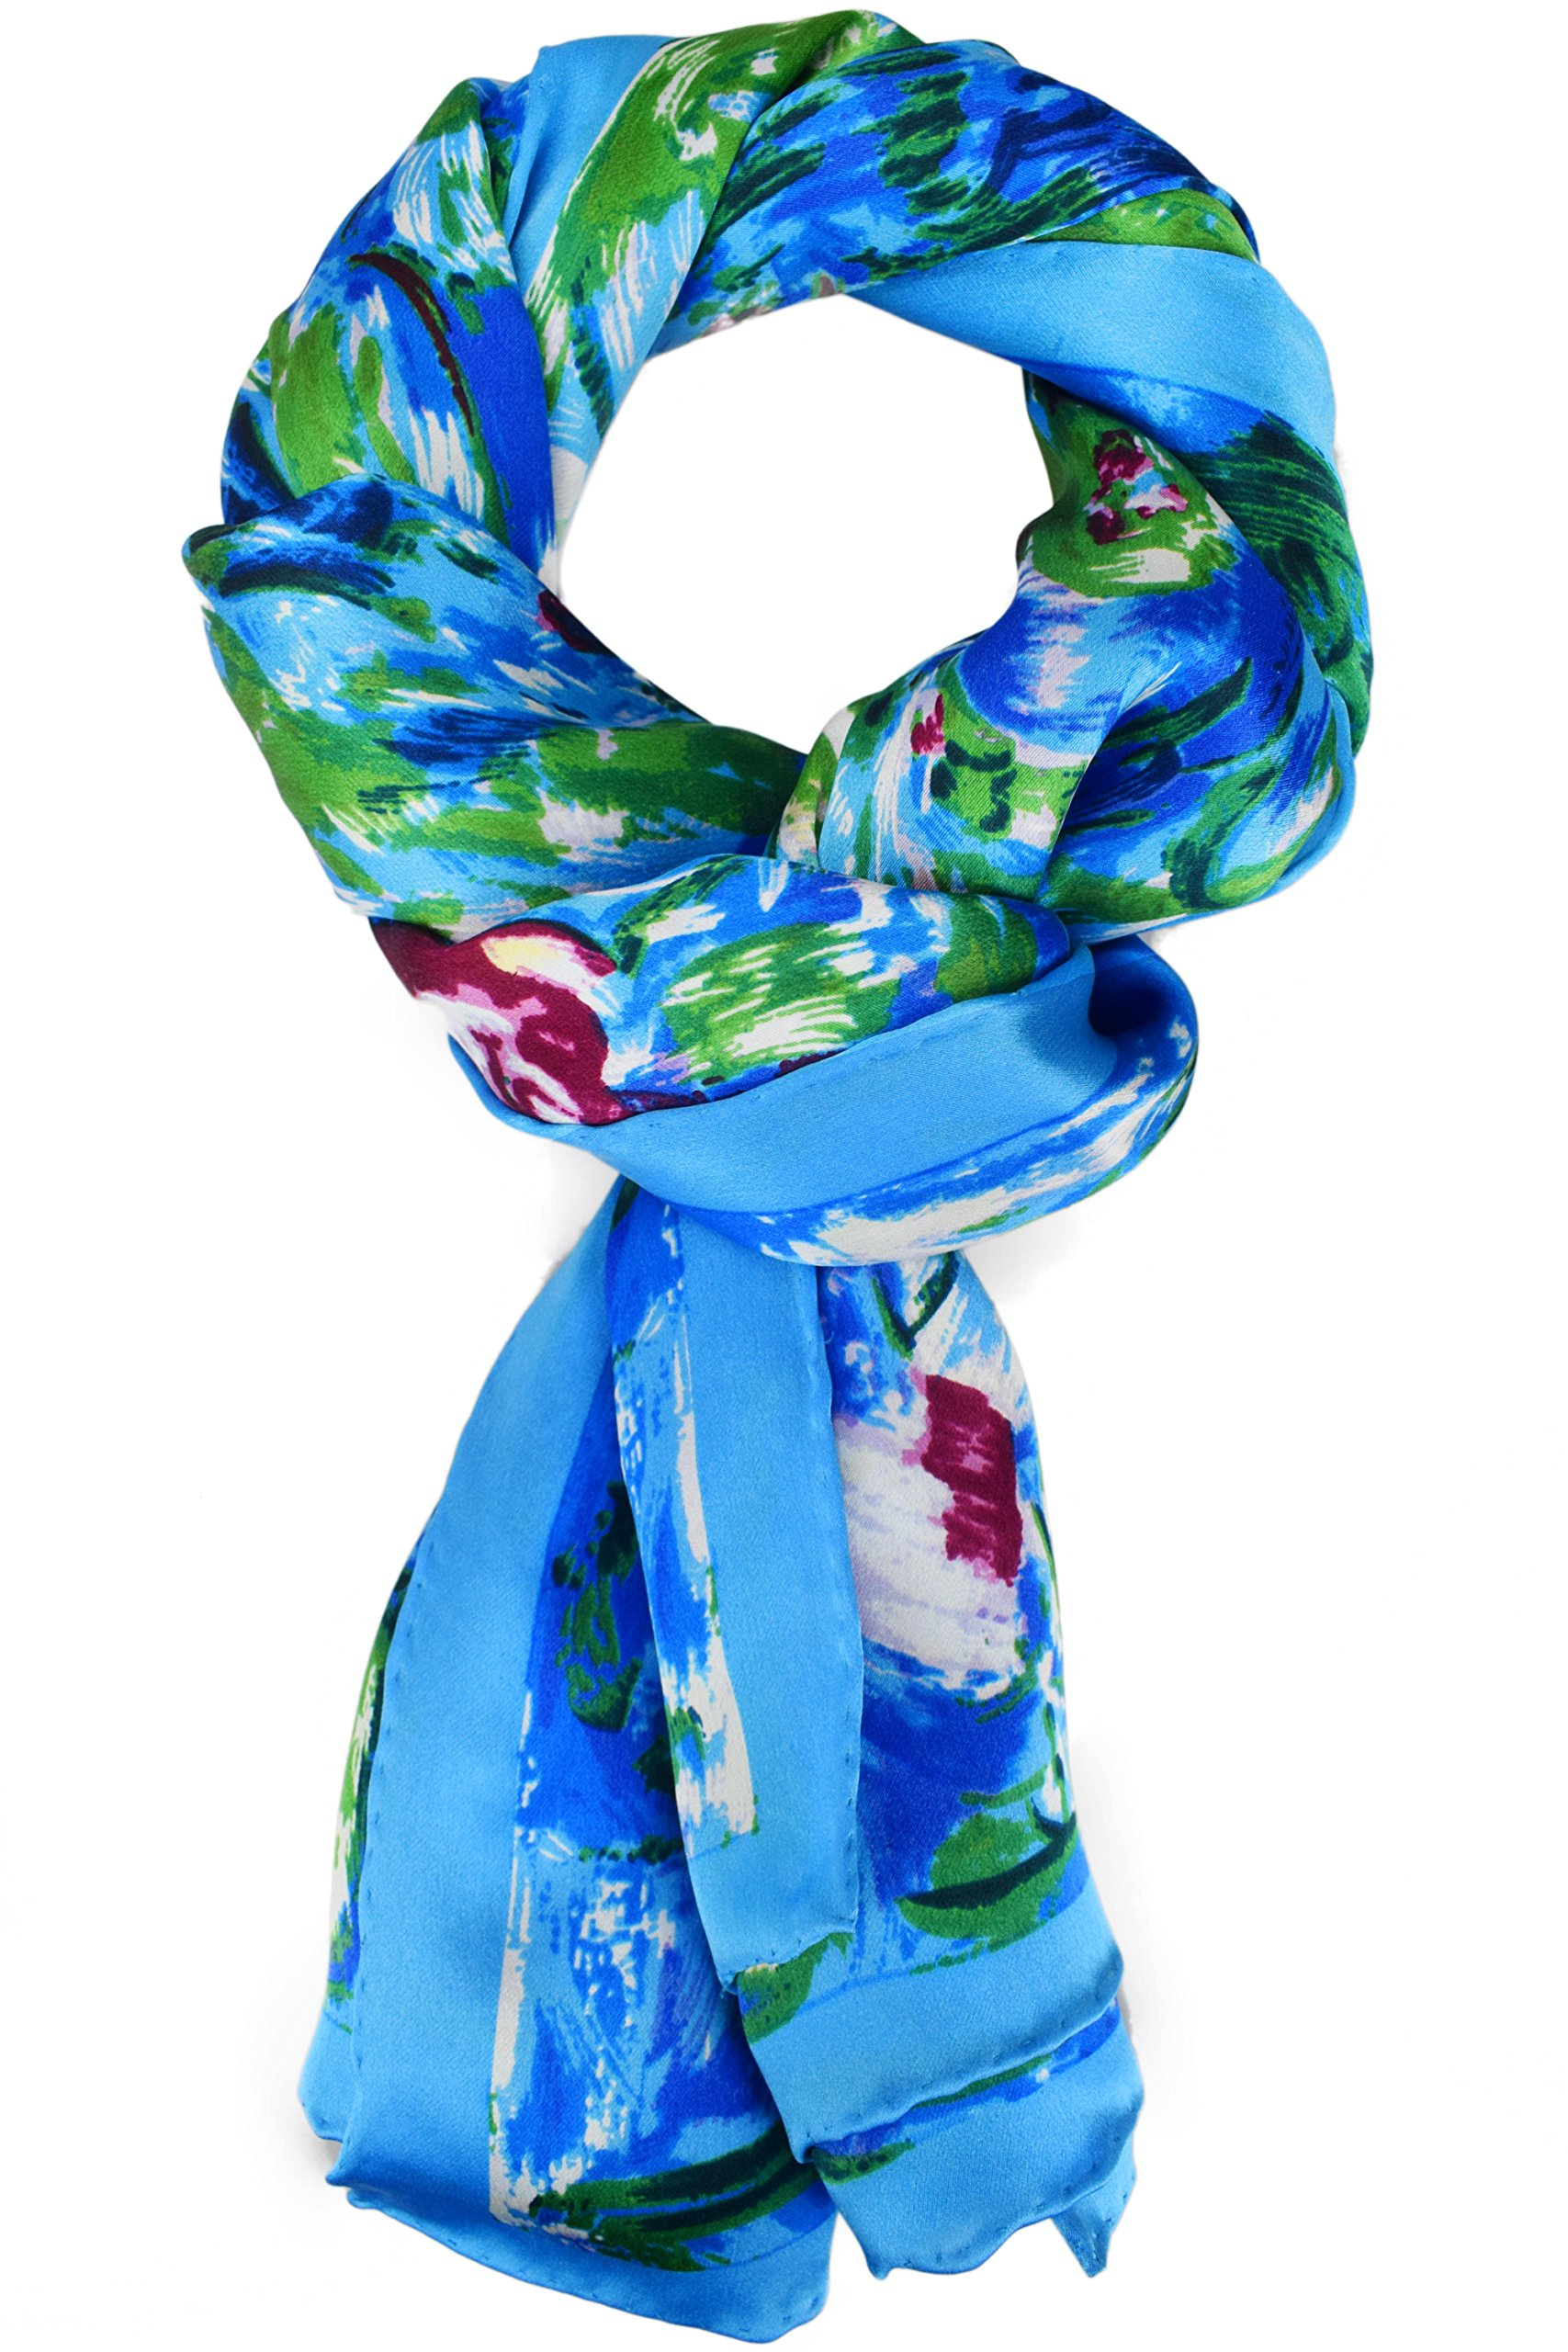 Luxurious 100% Charmeuse Silk Art Collection Long Scarf Shawl (Water Lilies) by Elegna (Image #2)